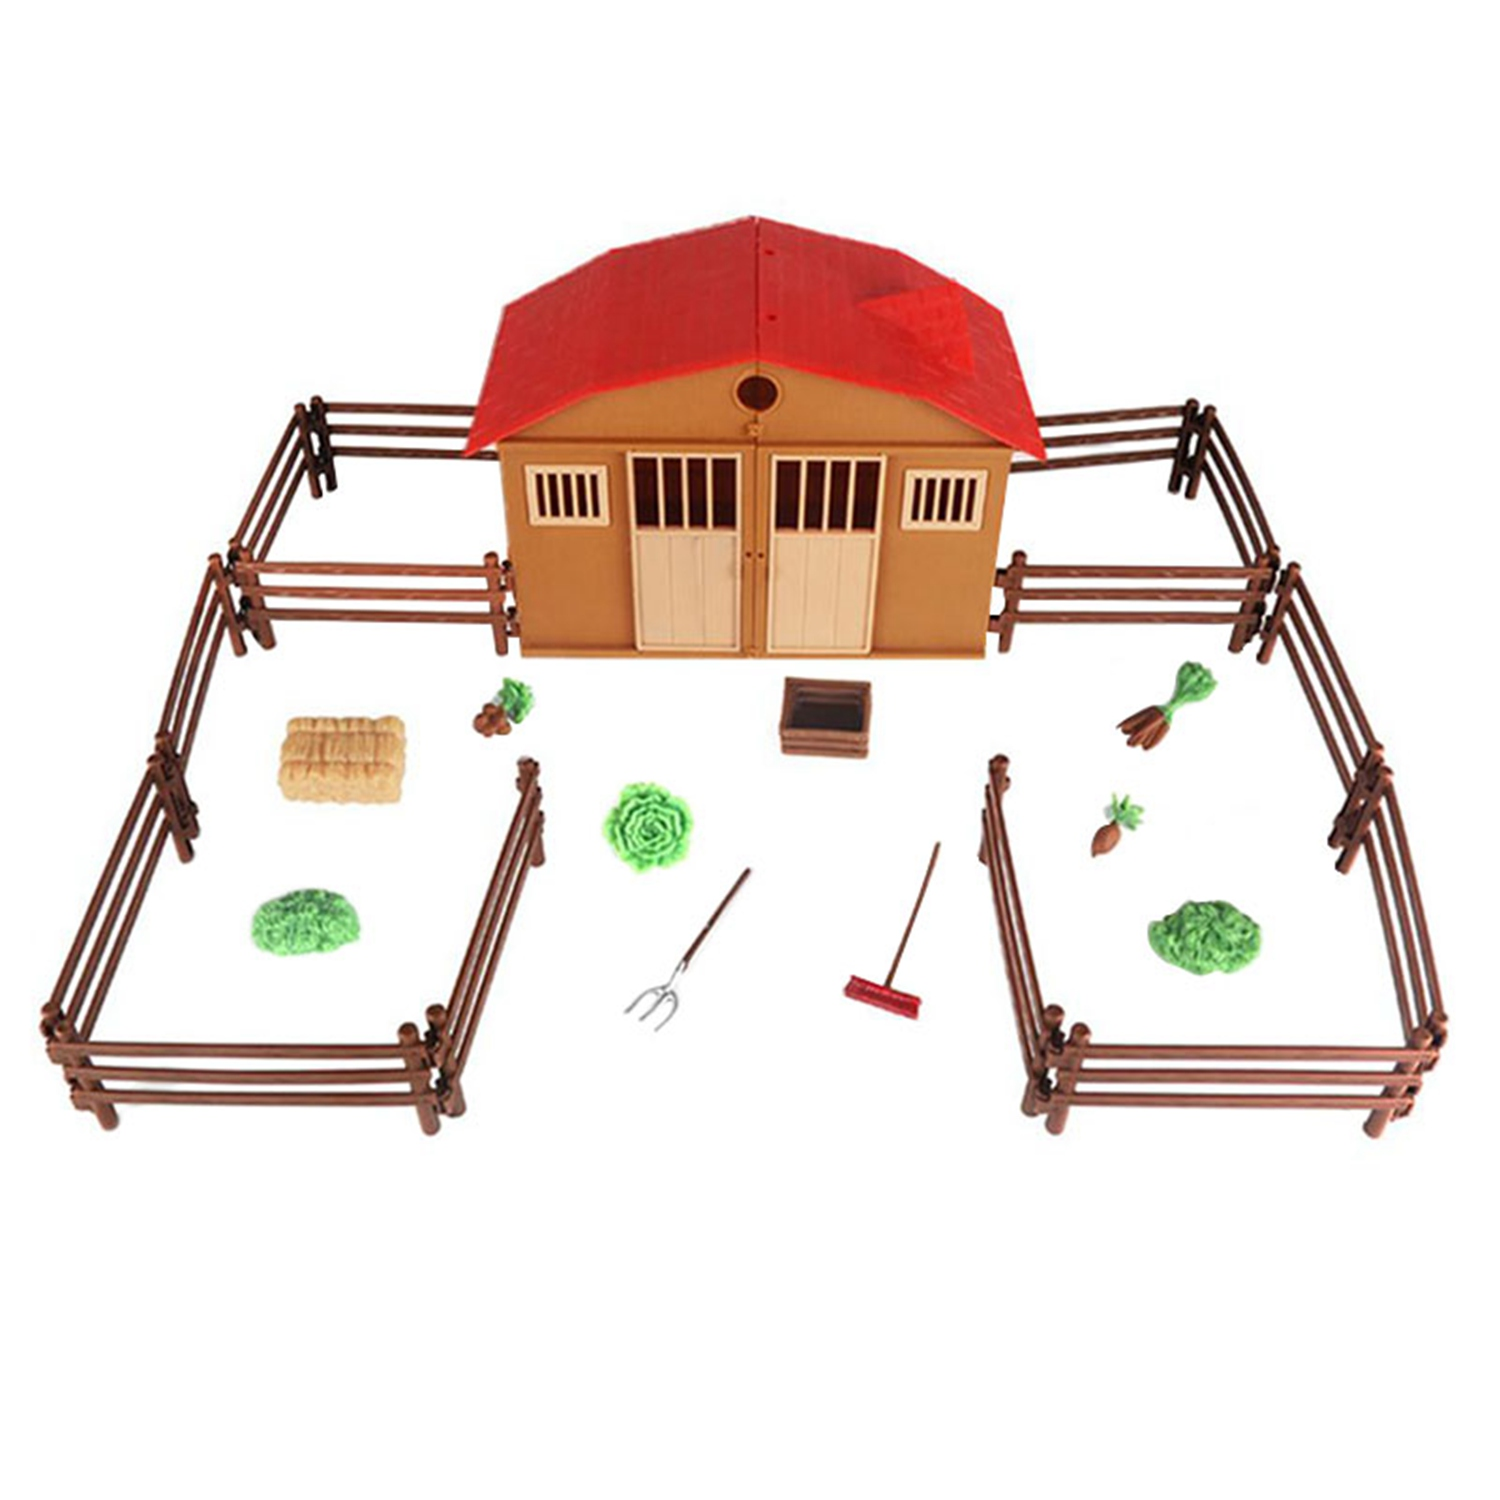 Model Building Kits Obedient Simulated Sand Table Scene Model Of Farm Ranch House Toy Set Children Intelligence Toy Model Model Building